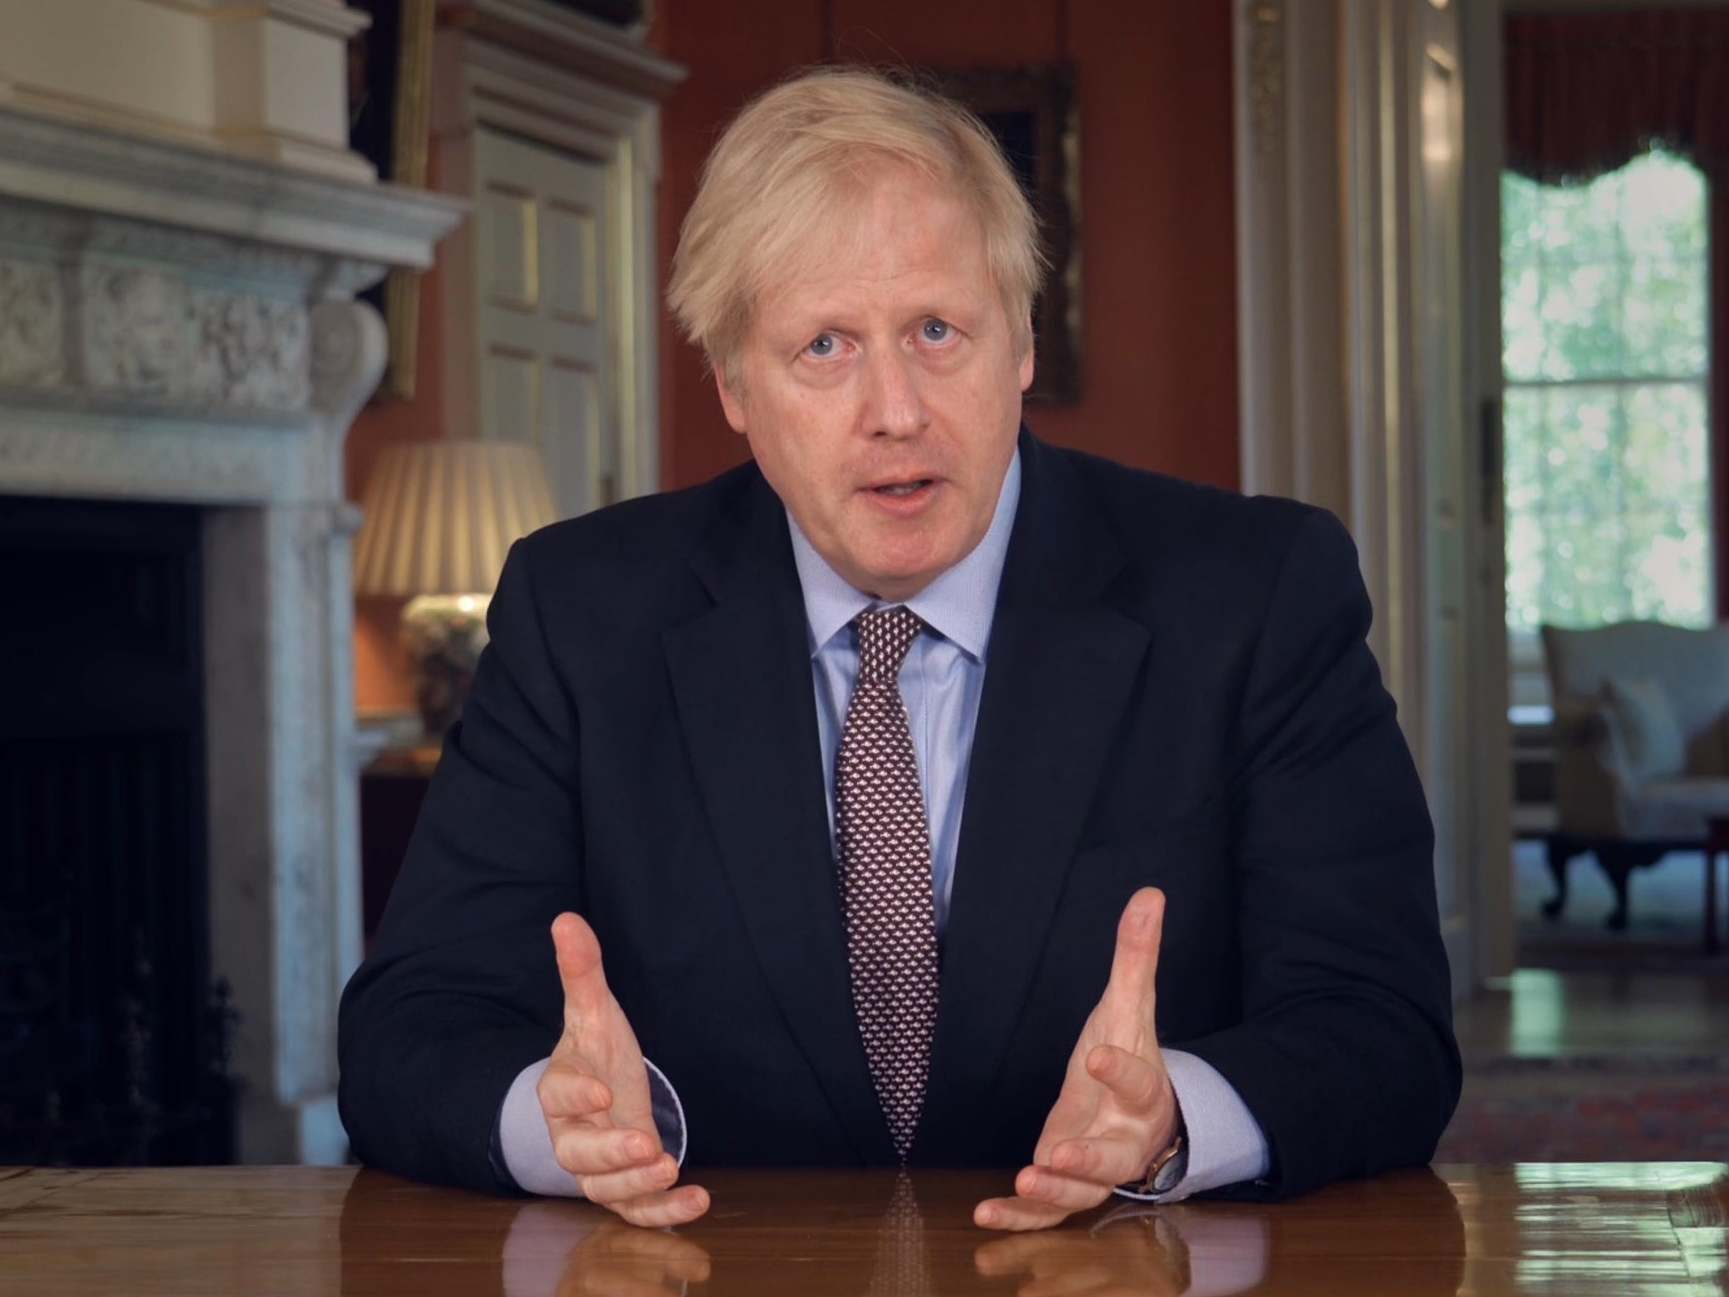 Boris Johnson speech becomes one of most-watched TV broadcasts in history